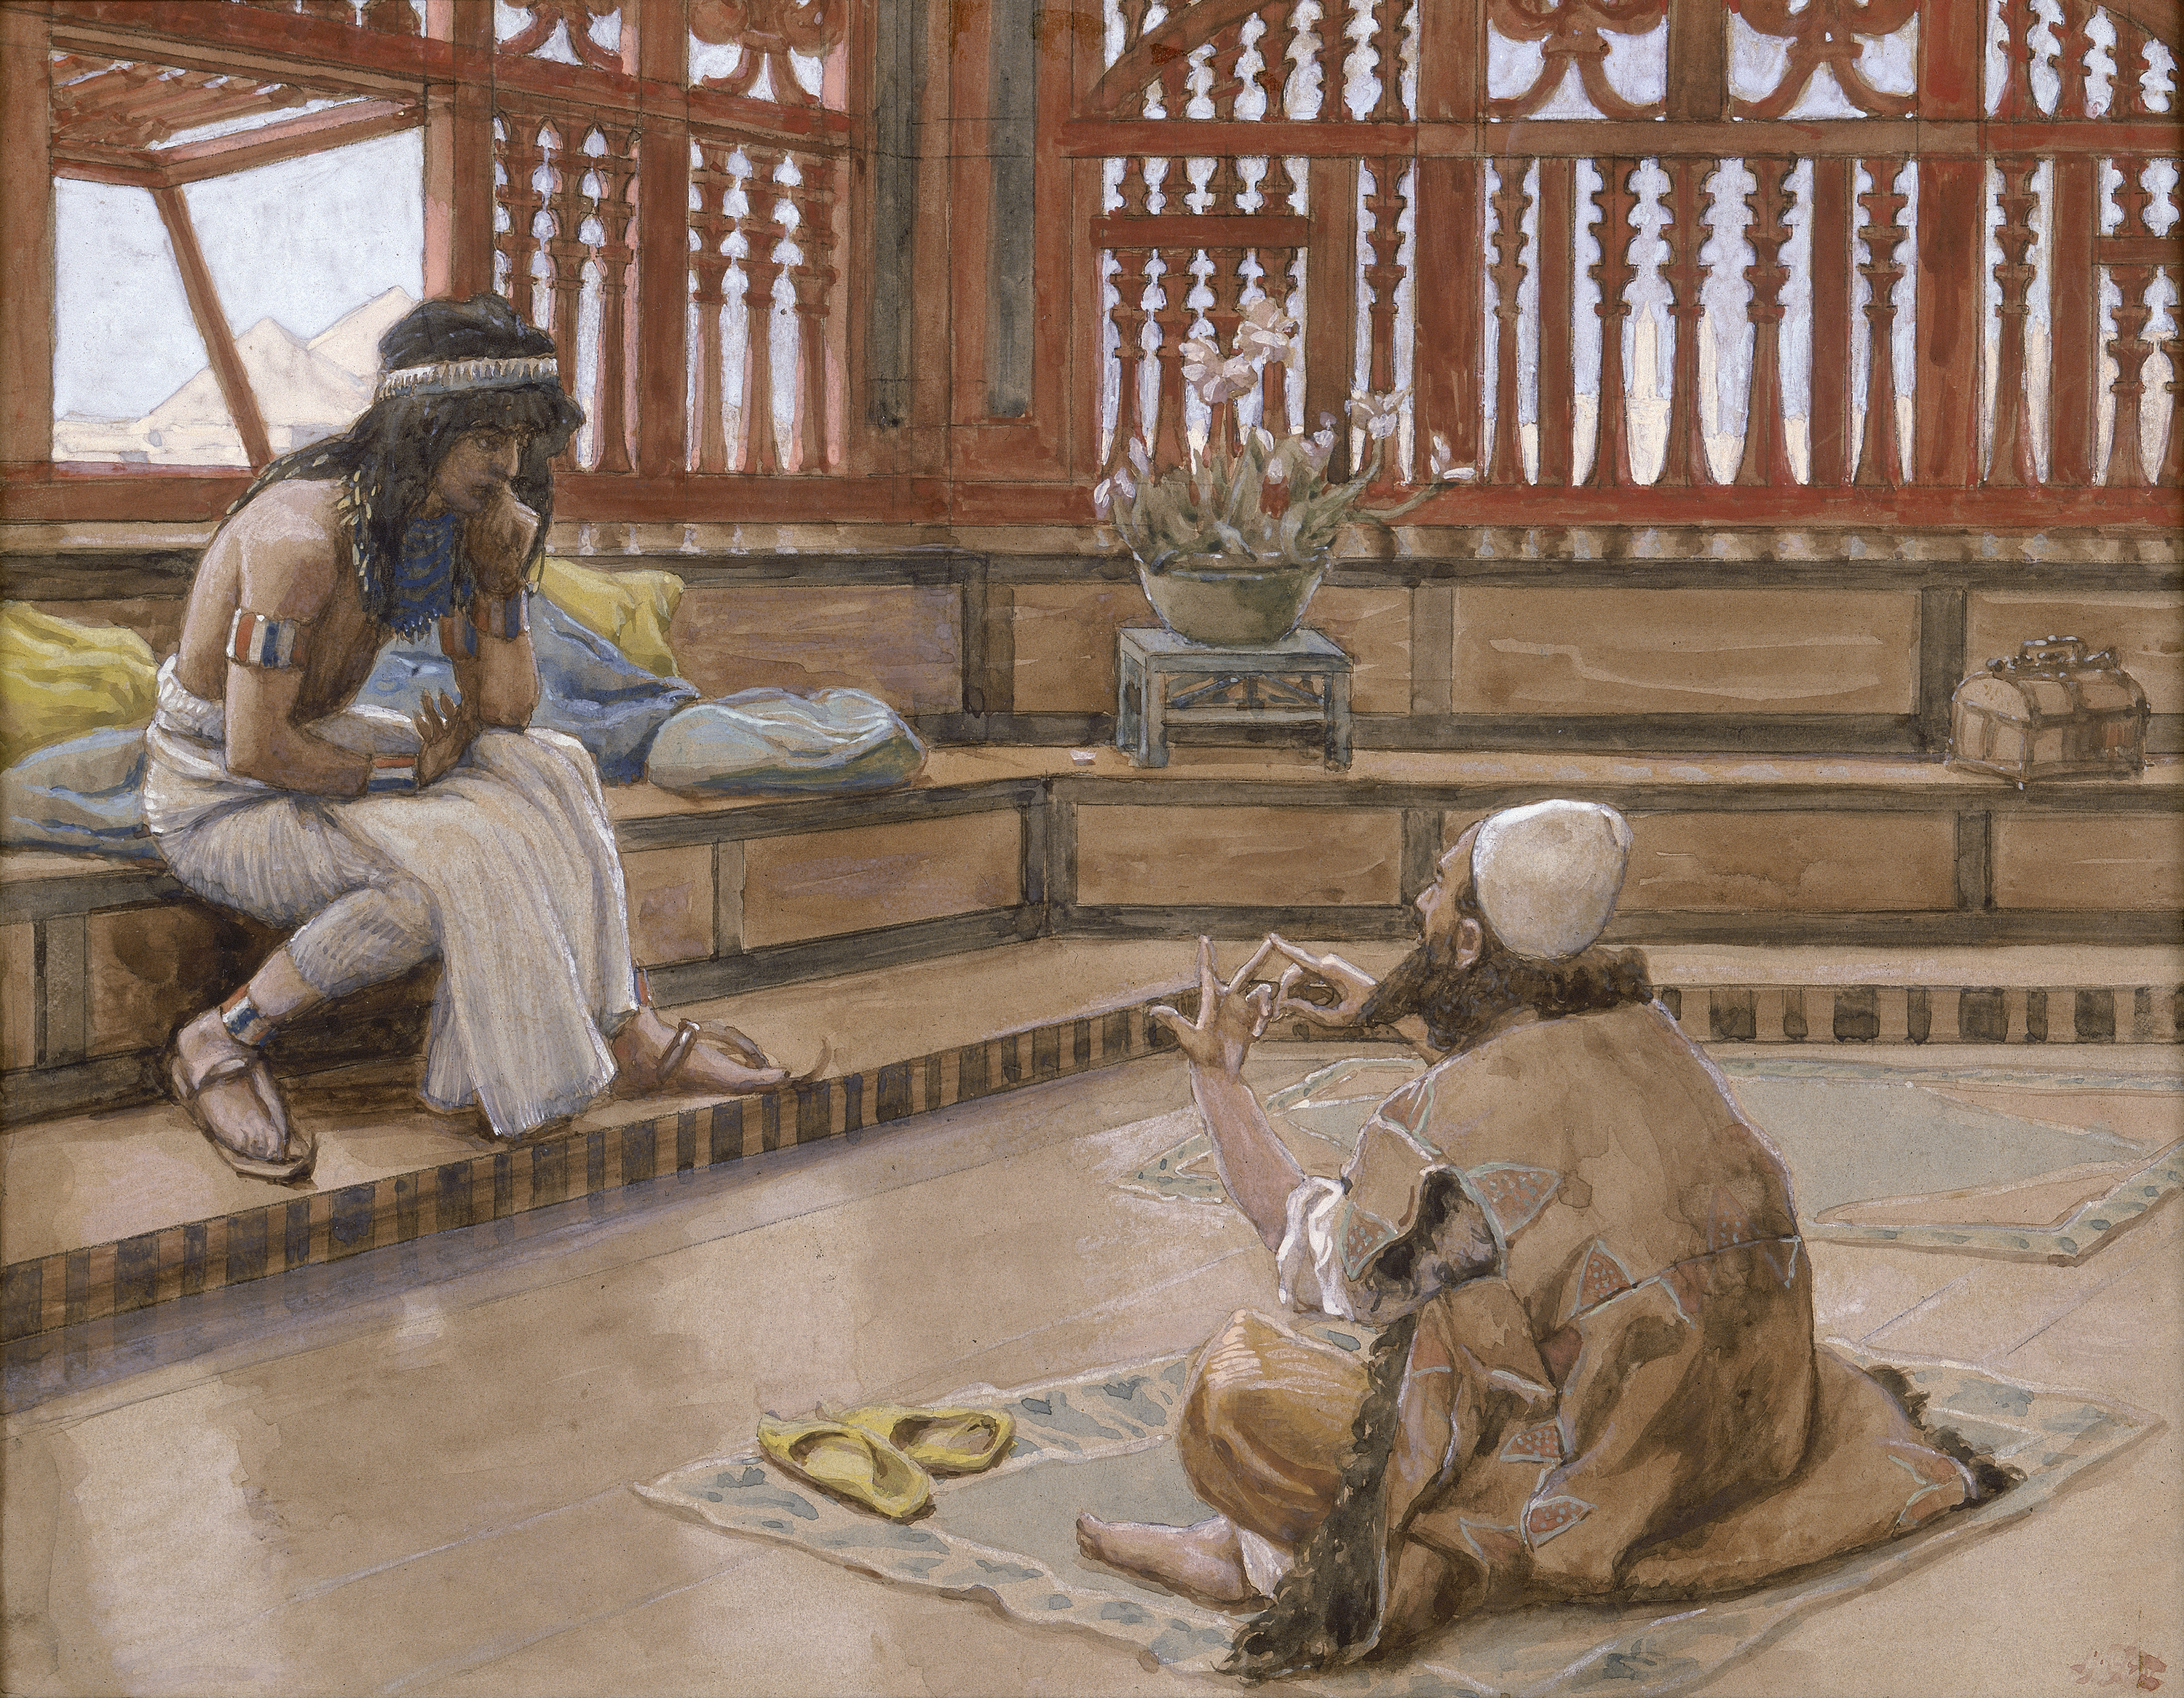 https://upload.wikimedia.org/wikipedia/commons/2/29/Tissot_Joseph_Converses_With_Judah%2C_His_Brother.jpg